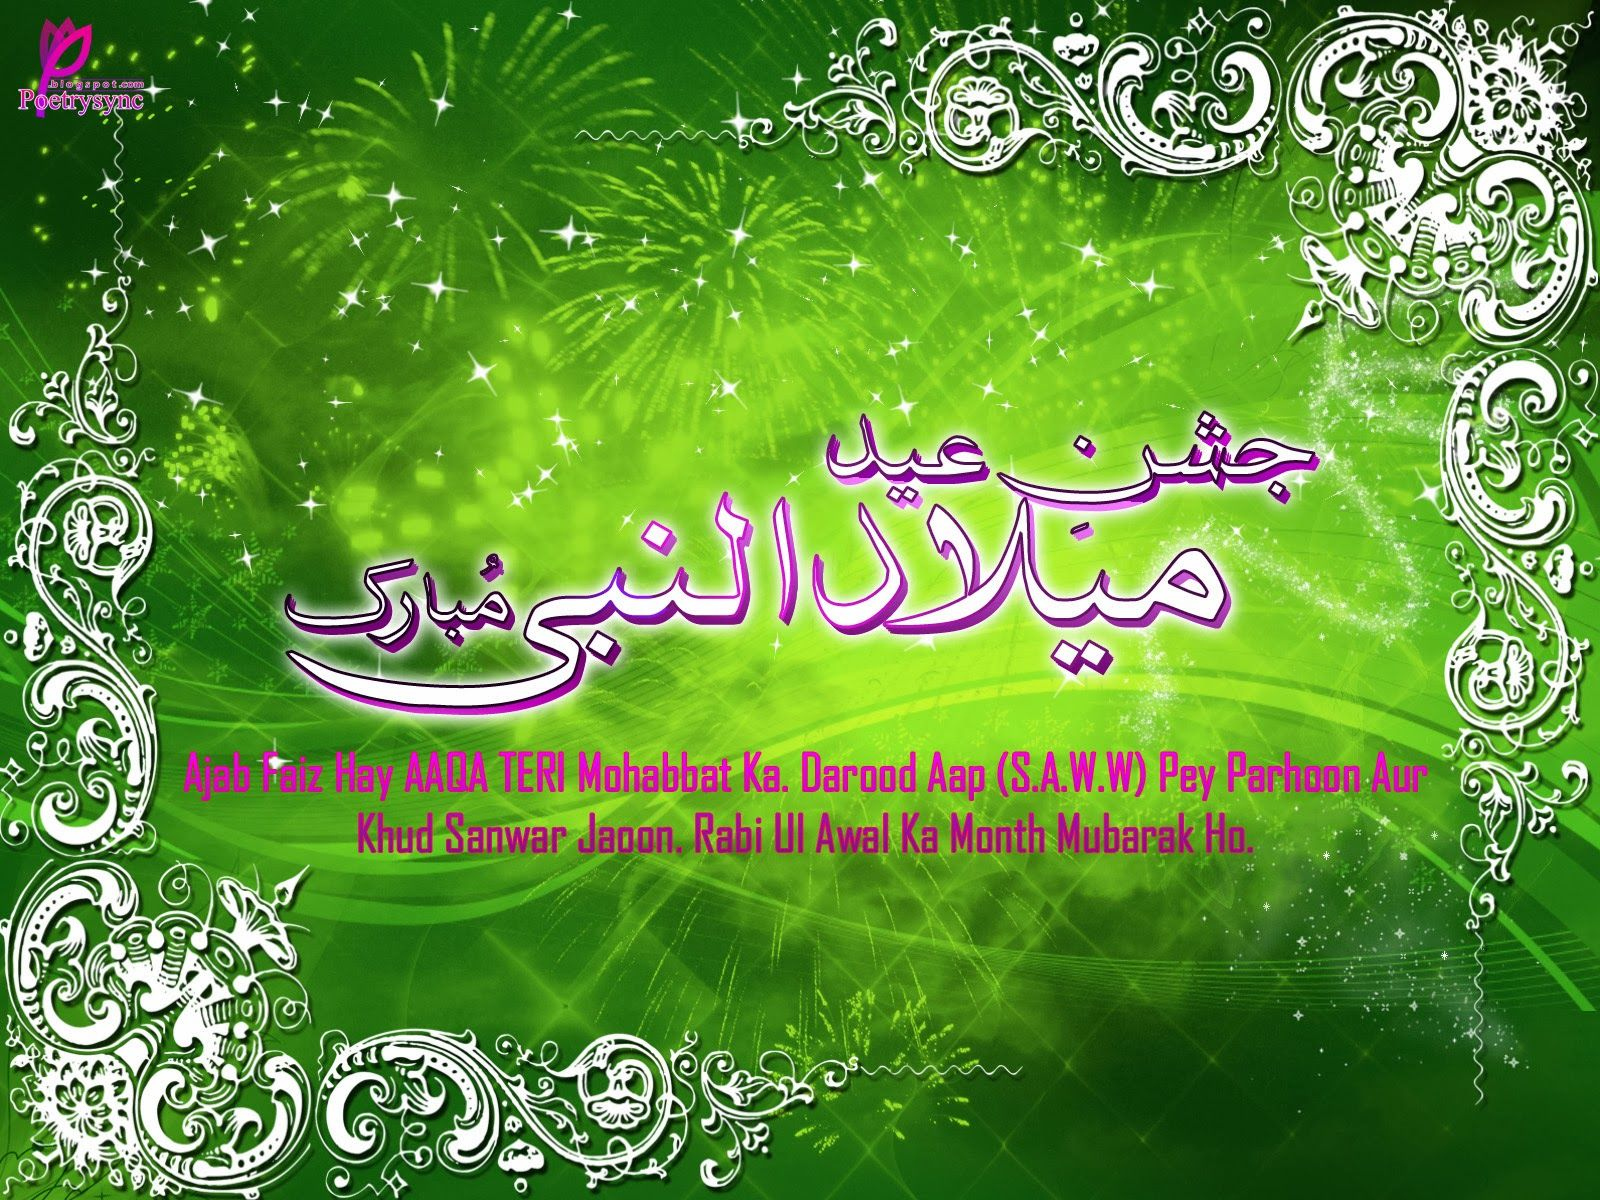 Poetry eid e milad un nabi urdu shayari sms with greetings images poetry eid e milad un nabi urdu shayari sms with greetings images m4hsunfo